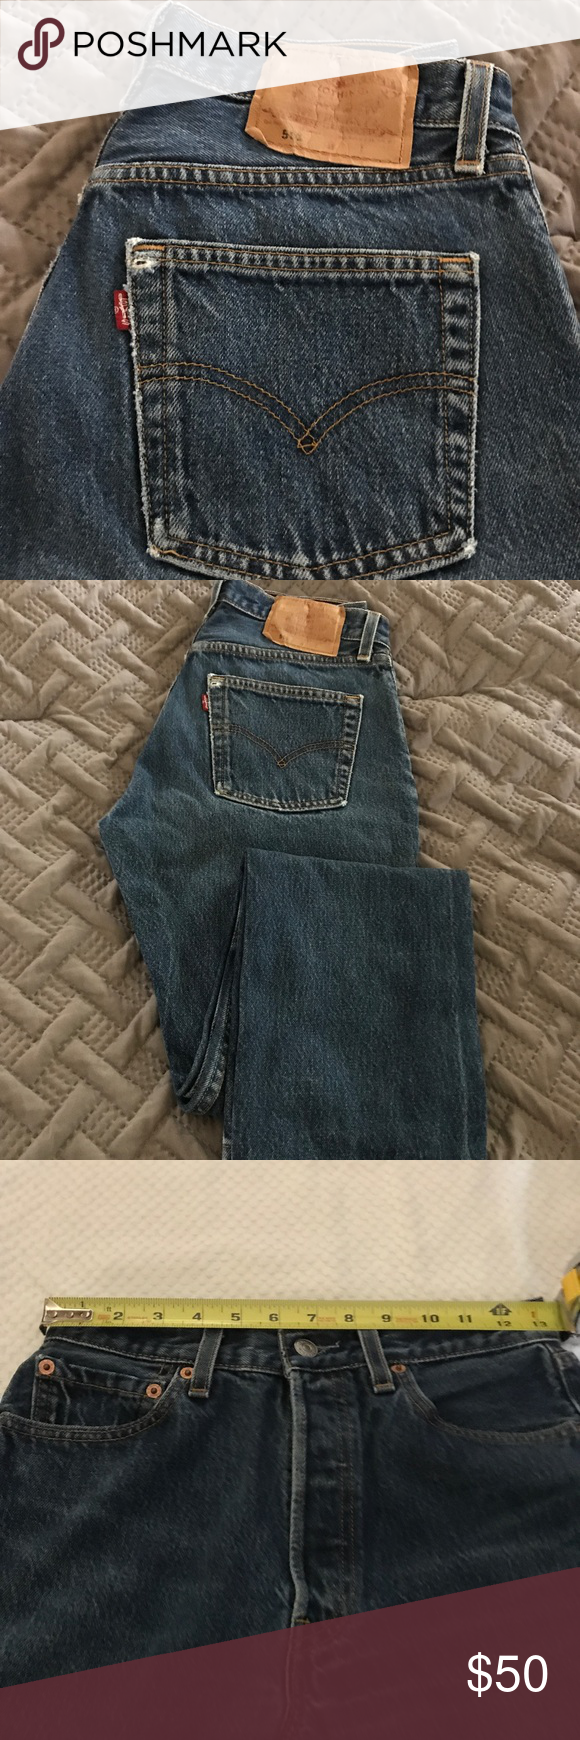 """501 high waisted Levi's jeans 👖 501 Vintage High Waisted Women's Levi's  Jeans, button up, the waist measures at 13 1/2 inches, from waist to crotch measures at 11 inches. The original tags says waist 29"""",length 30"""", made in the USA! Levi's Jeans"""